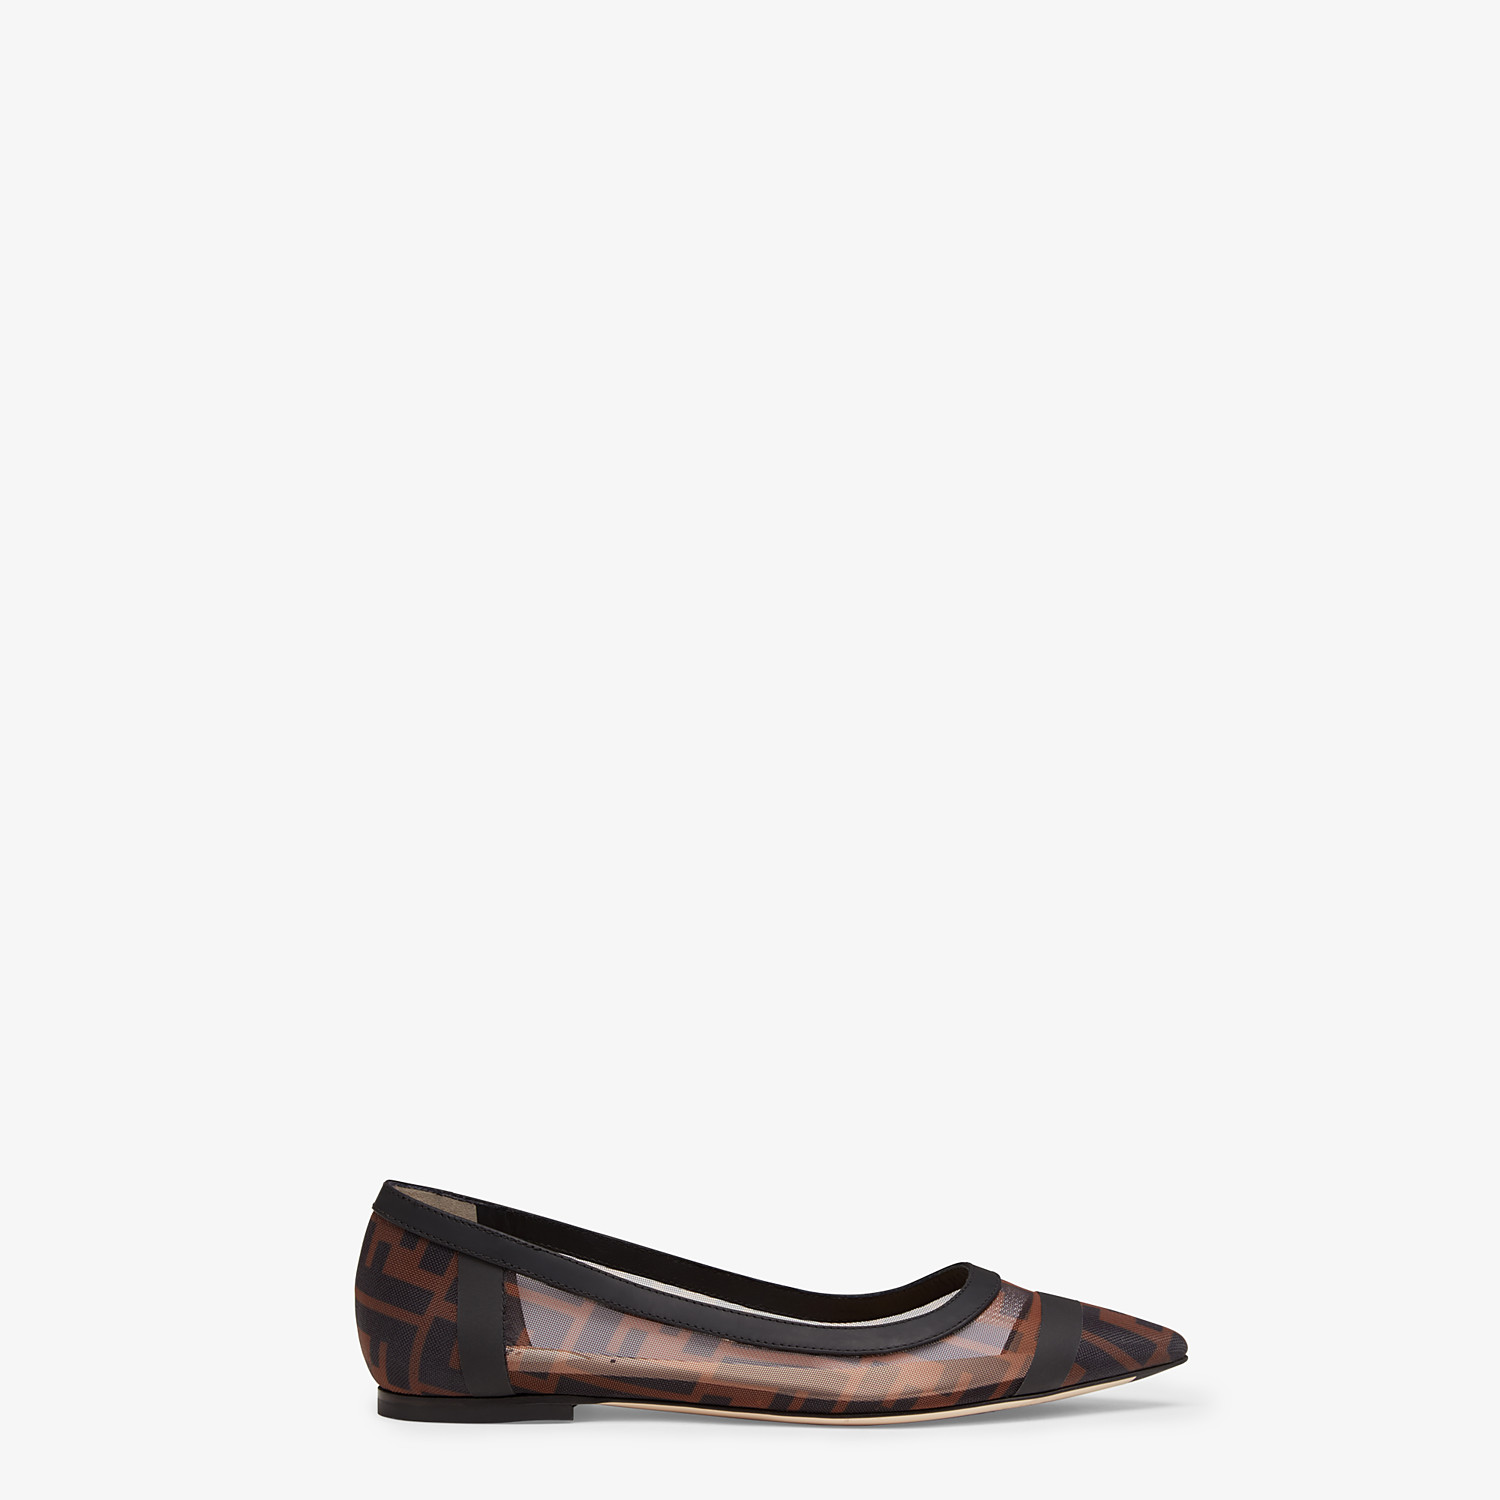 FENDI BALLERINAS - Mesh and black leather flats - view 1 detail